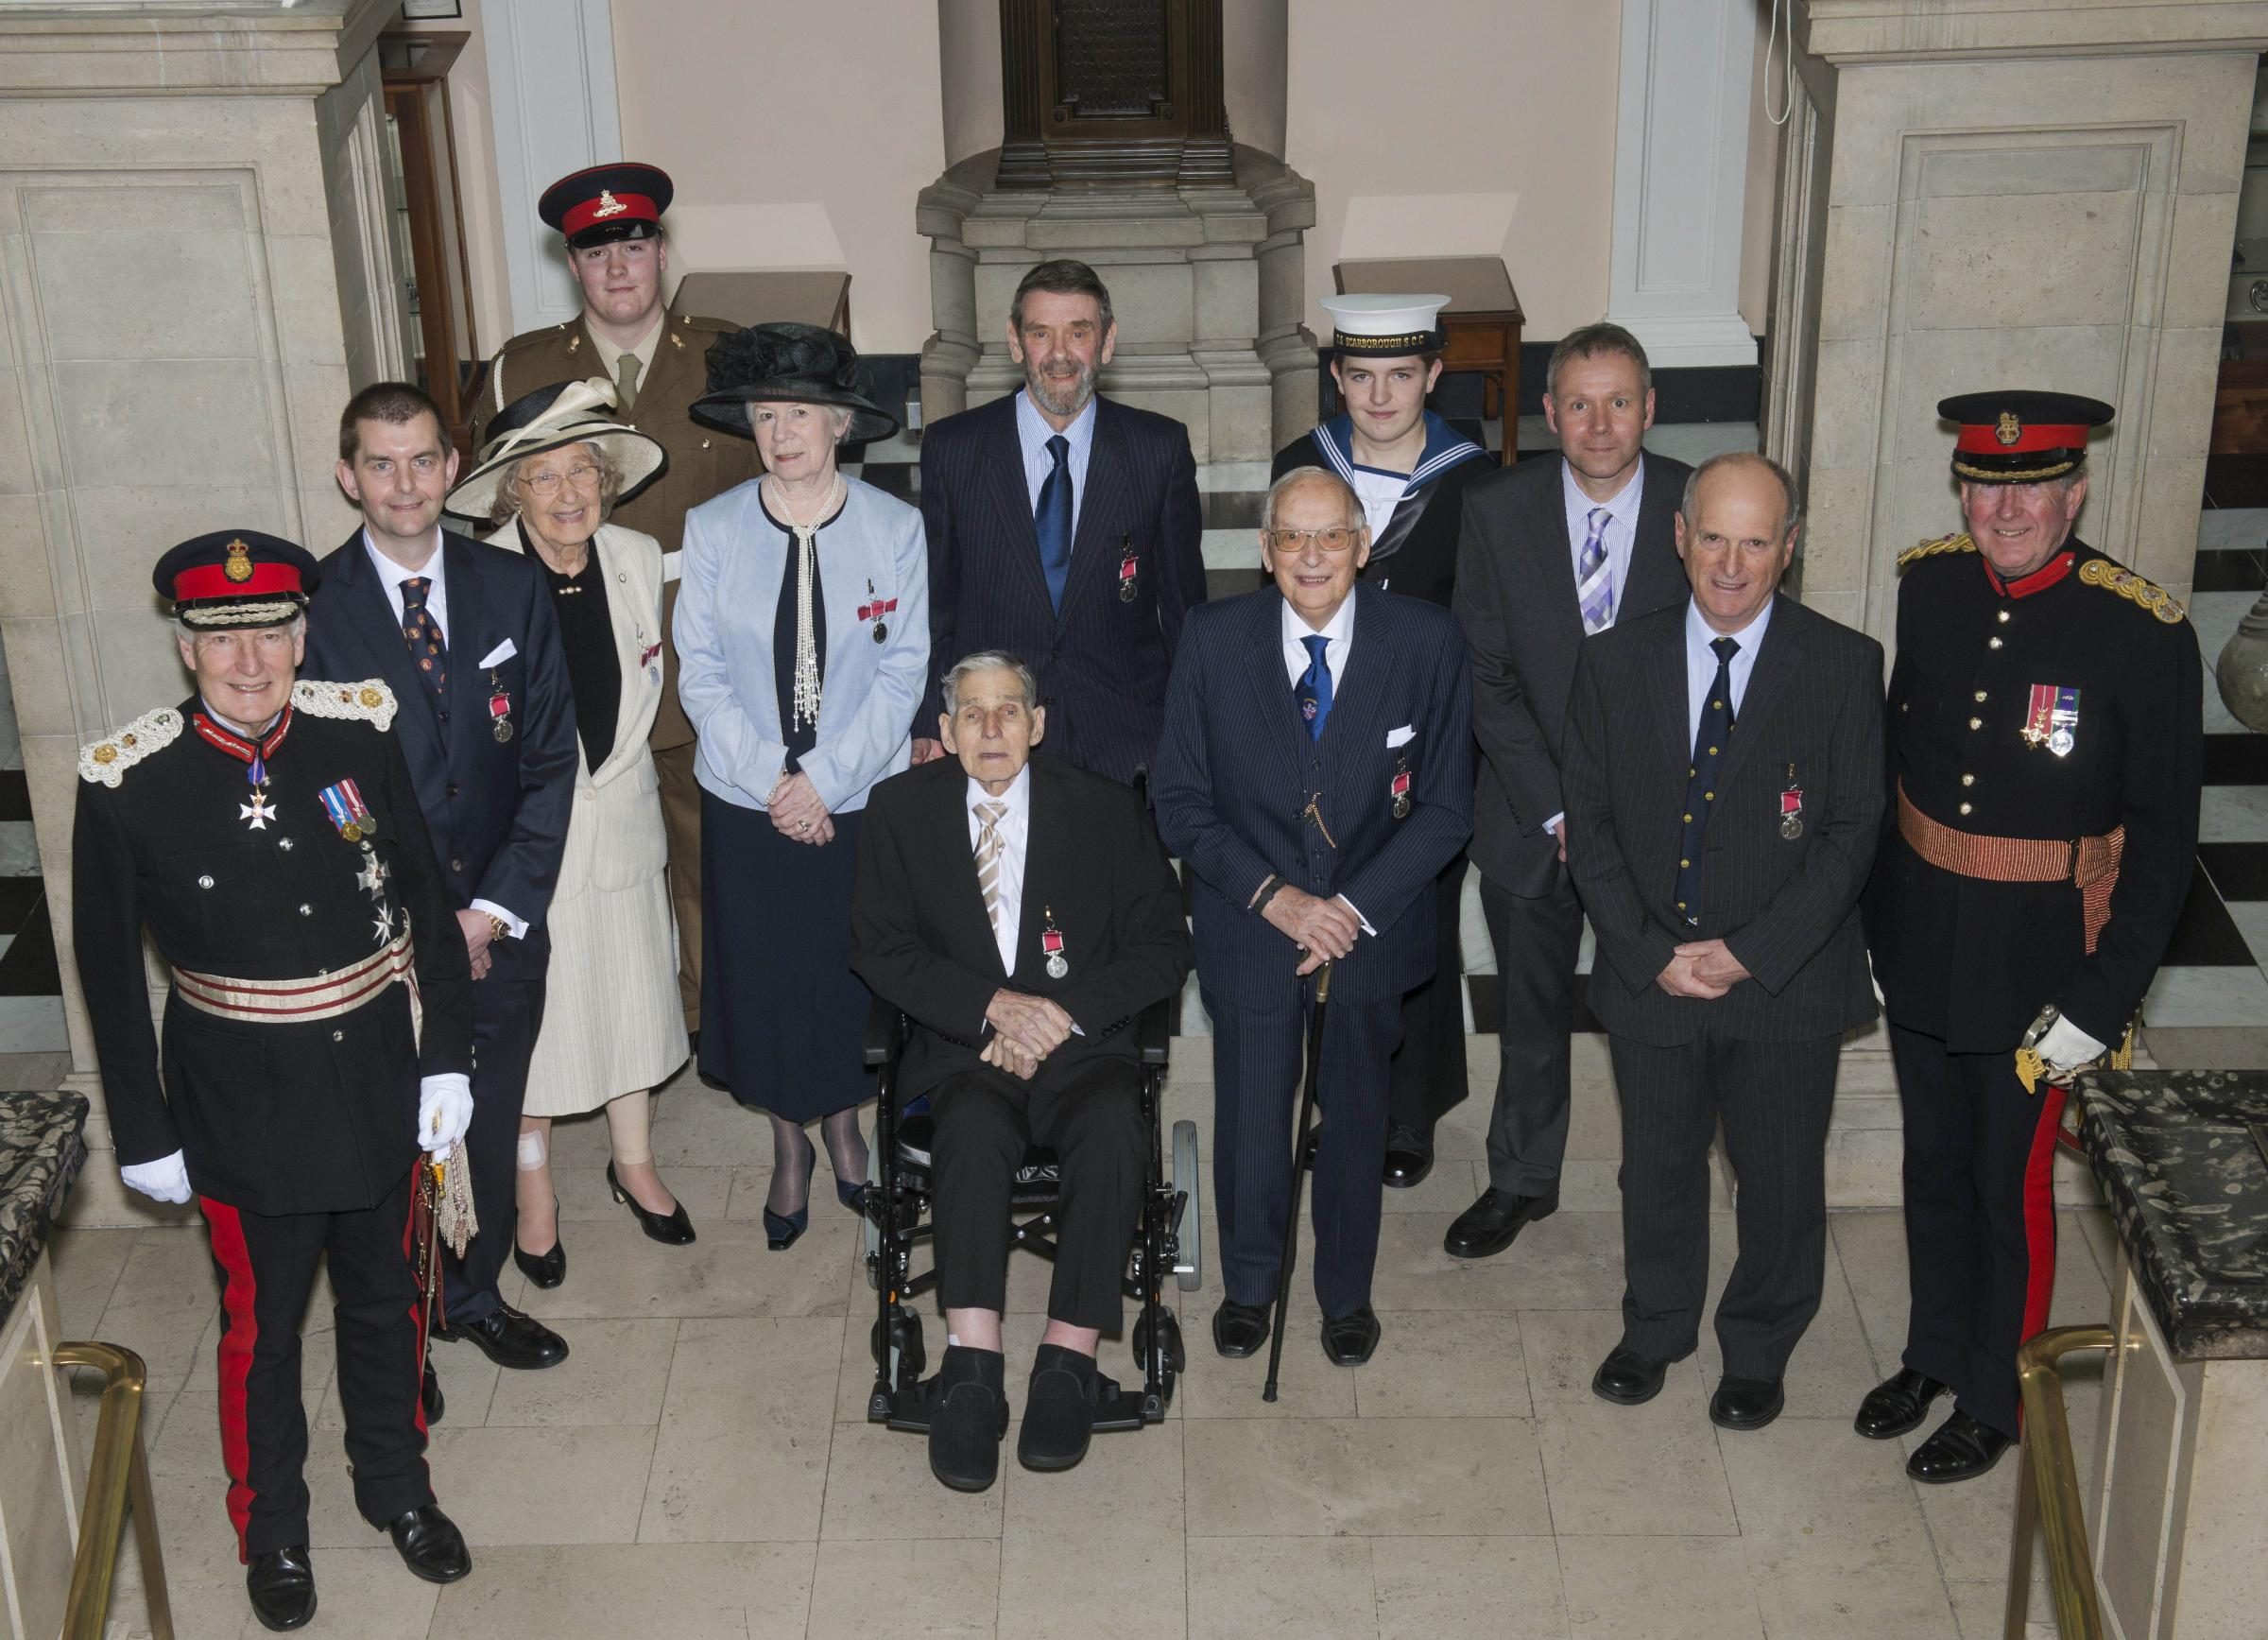 Volunteers receive their awards from The Lord Lieutenant The Lord Crathorne KCVO (left) and The Vice Lord Lieutenant: Brigadier Wardle OBE (right).